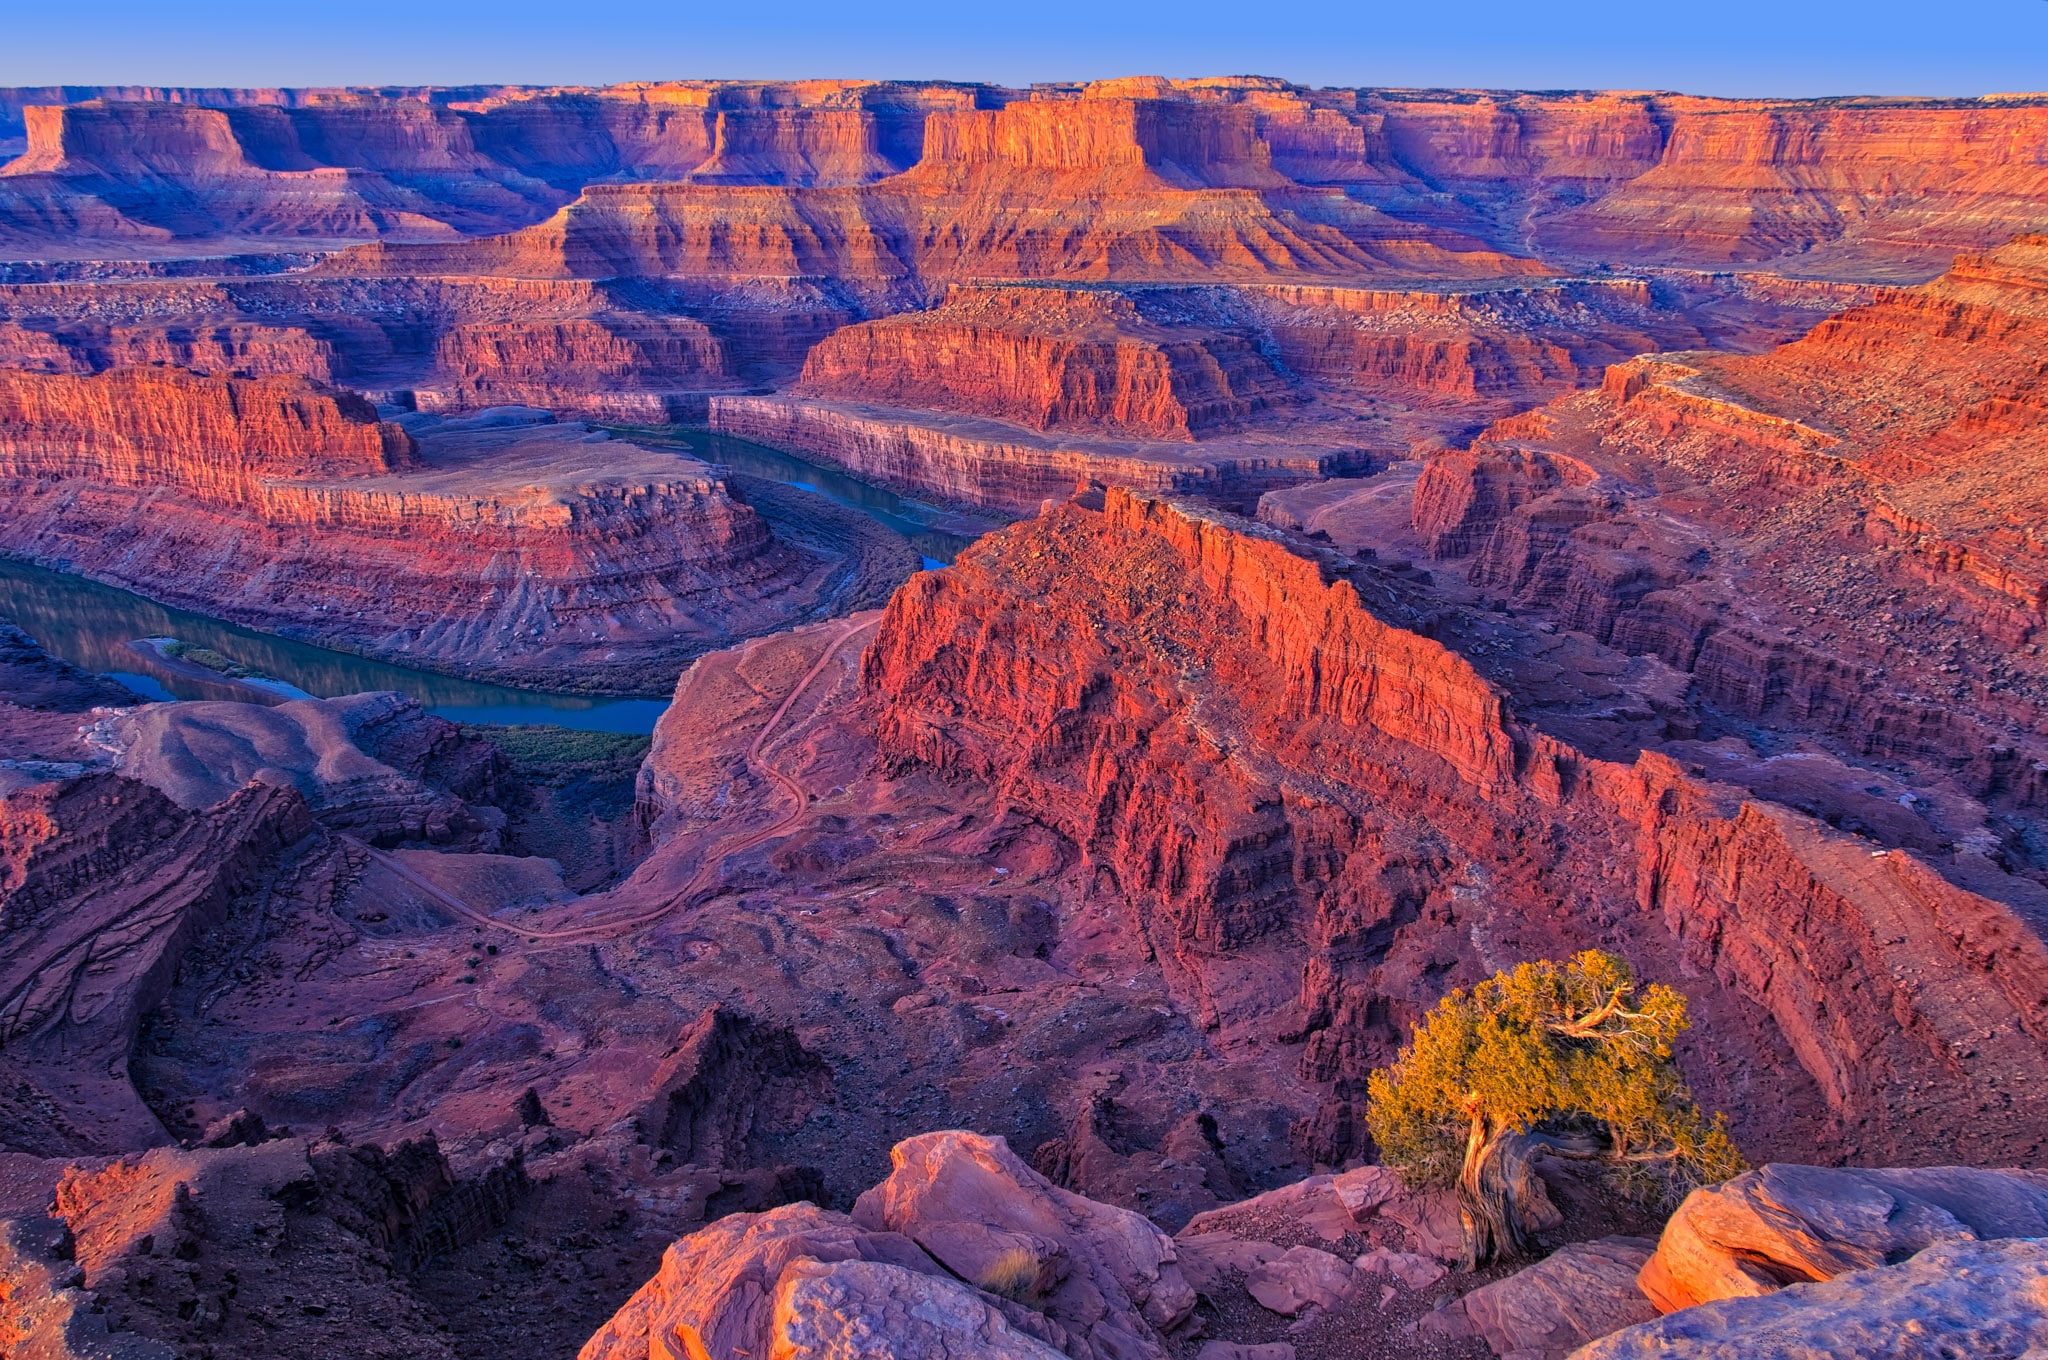 A view of the Colorado River running through Canyonlands National Park in Utah.